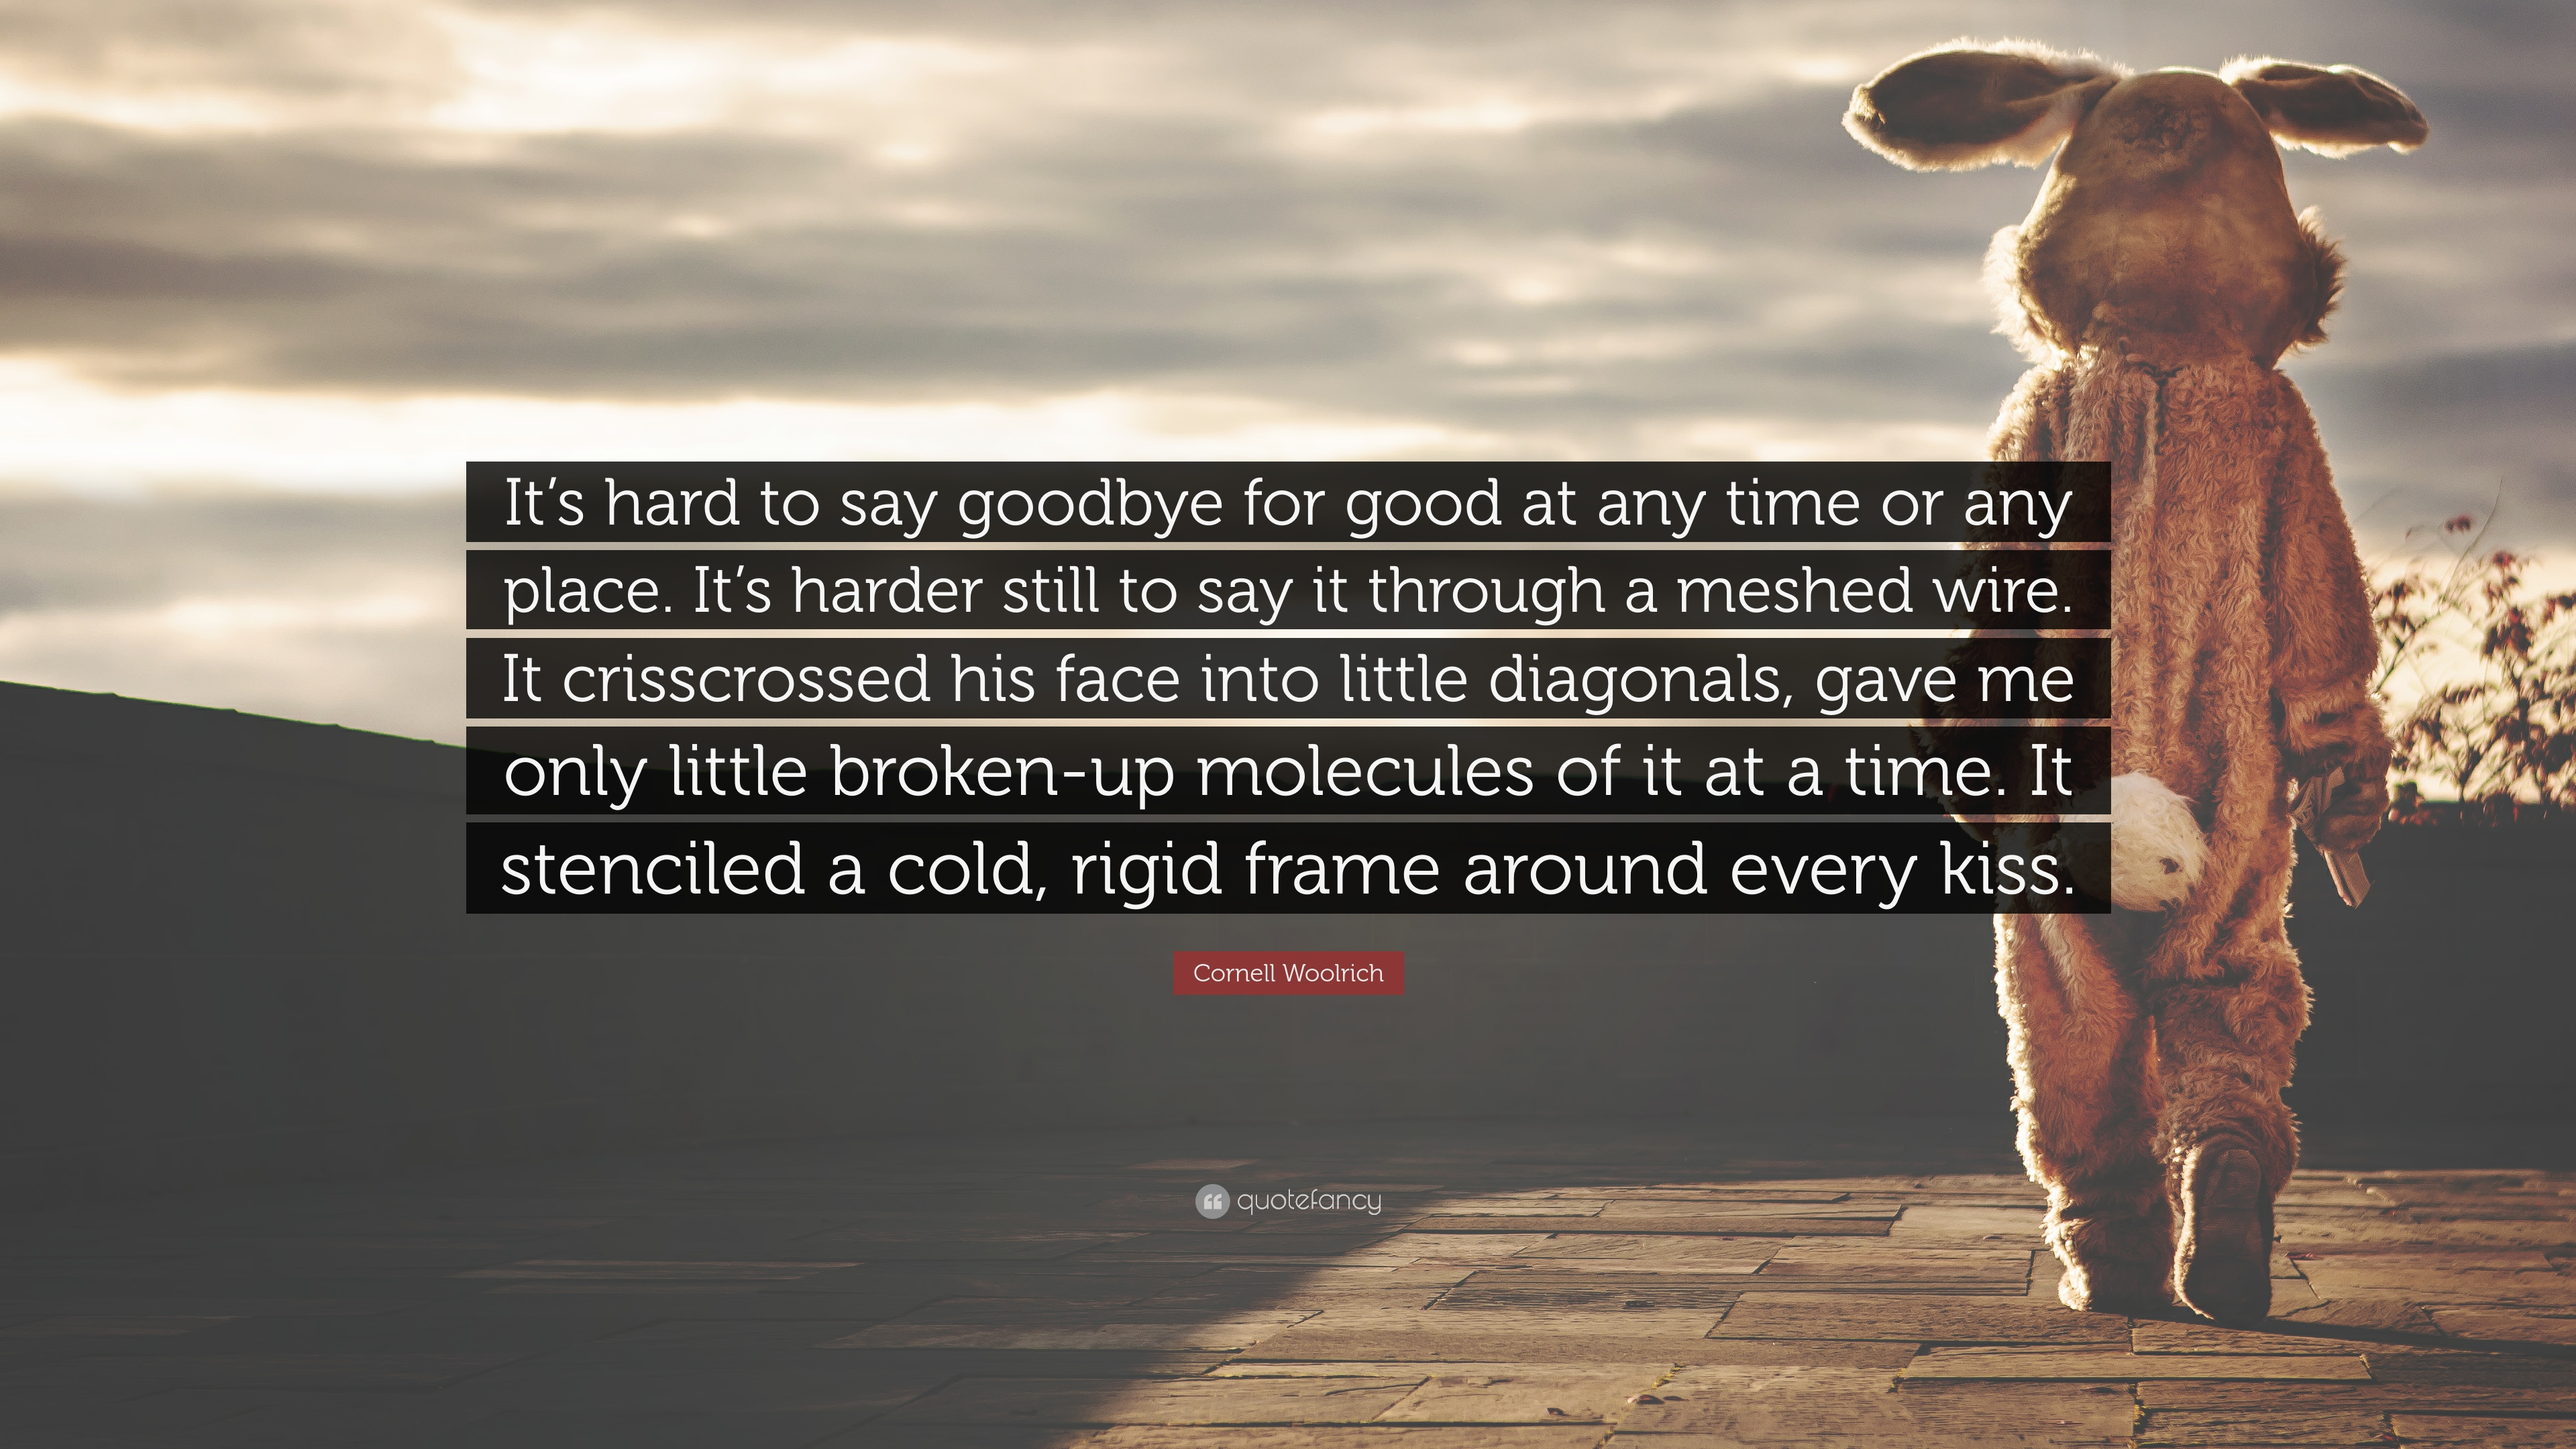 50+ Hard To Say Goodbye To A Friend Quotes